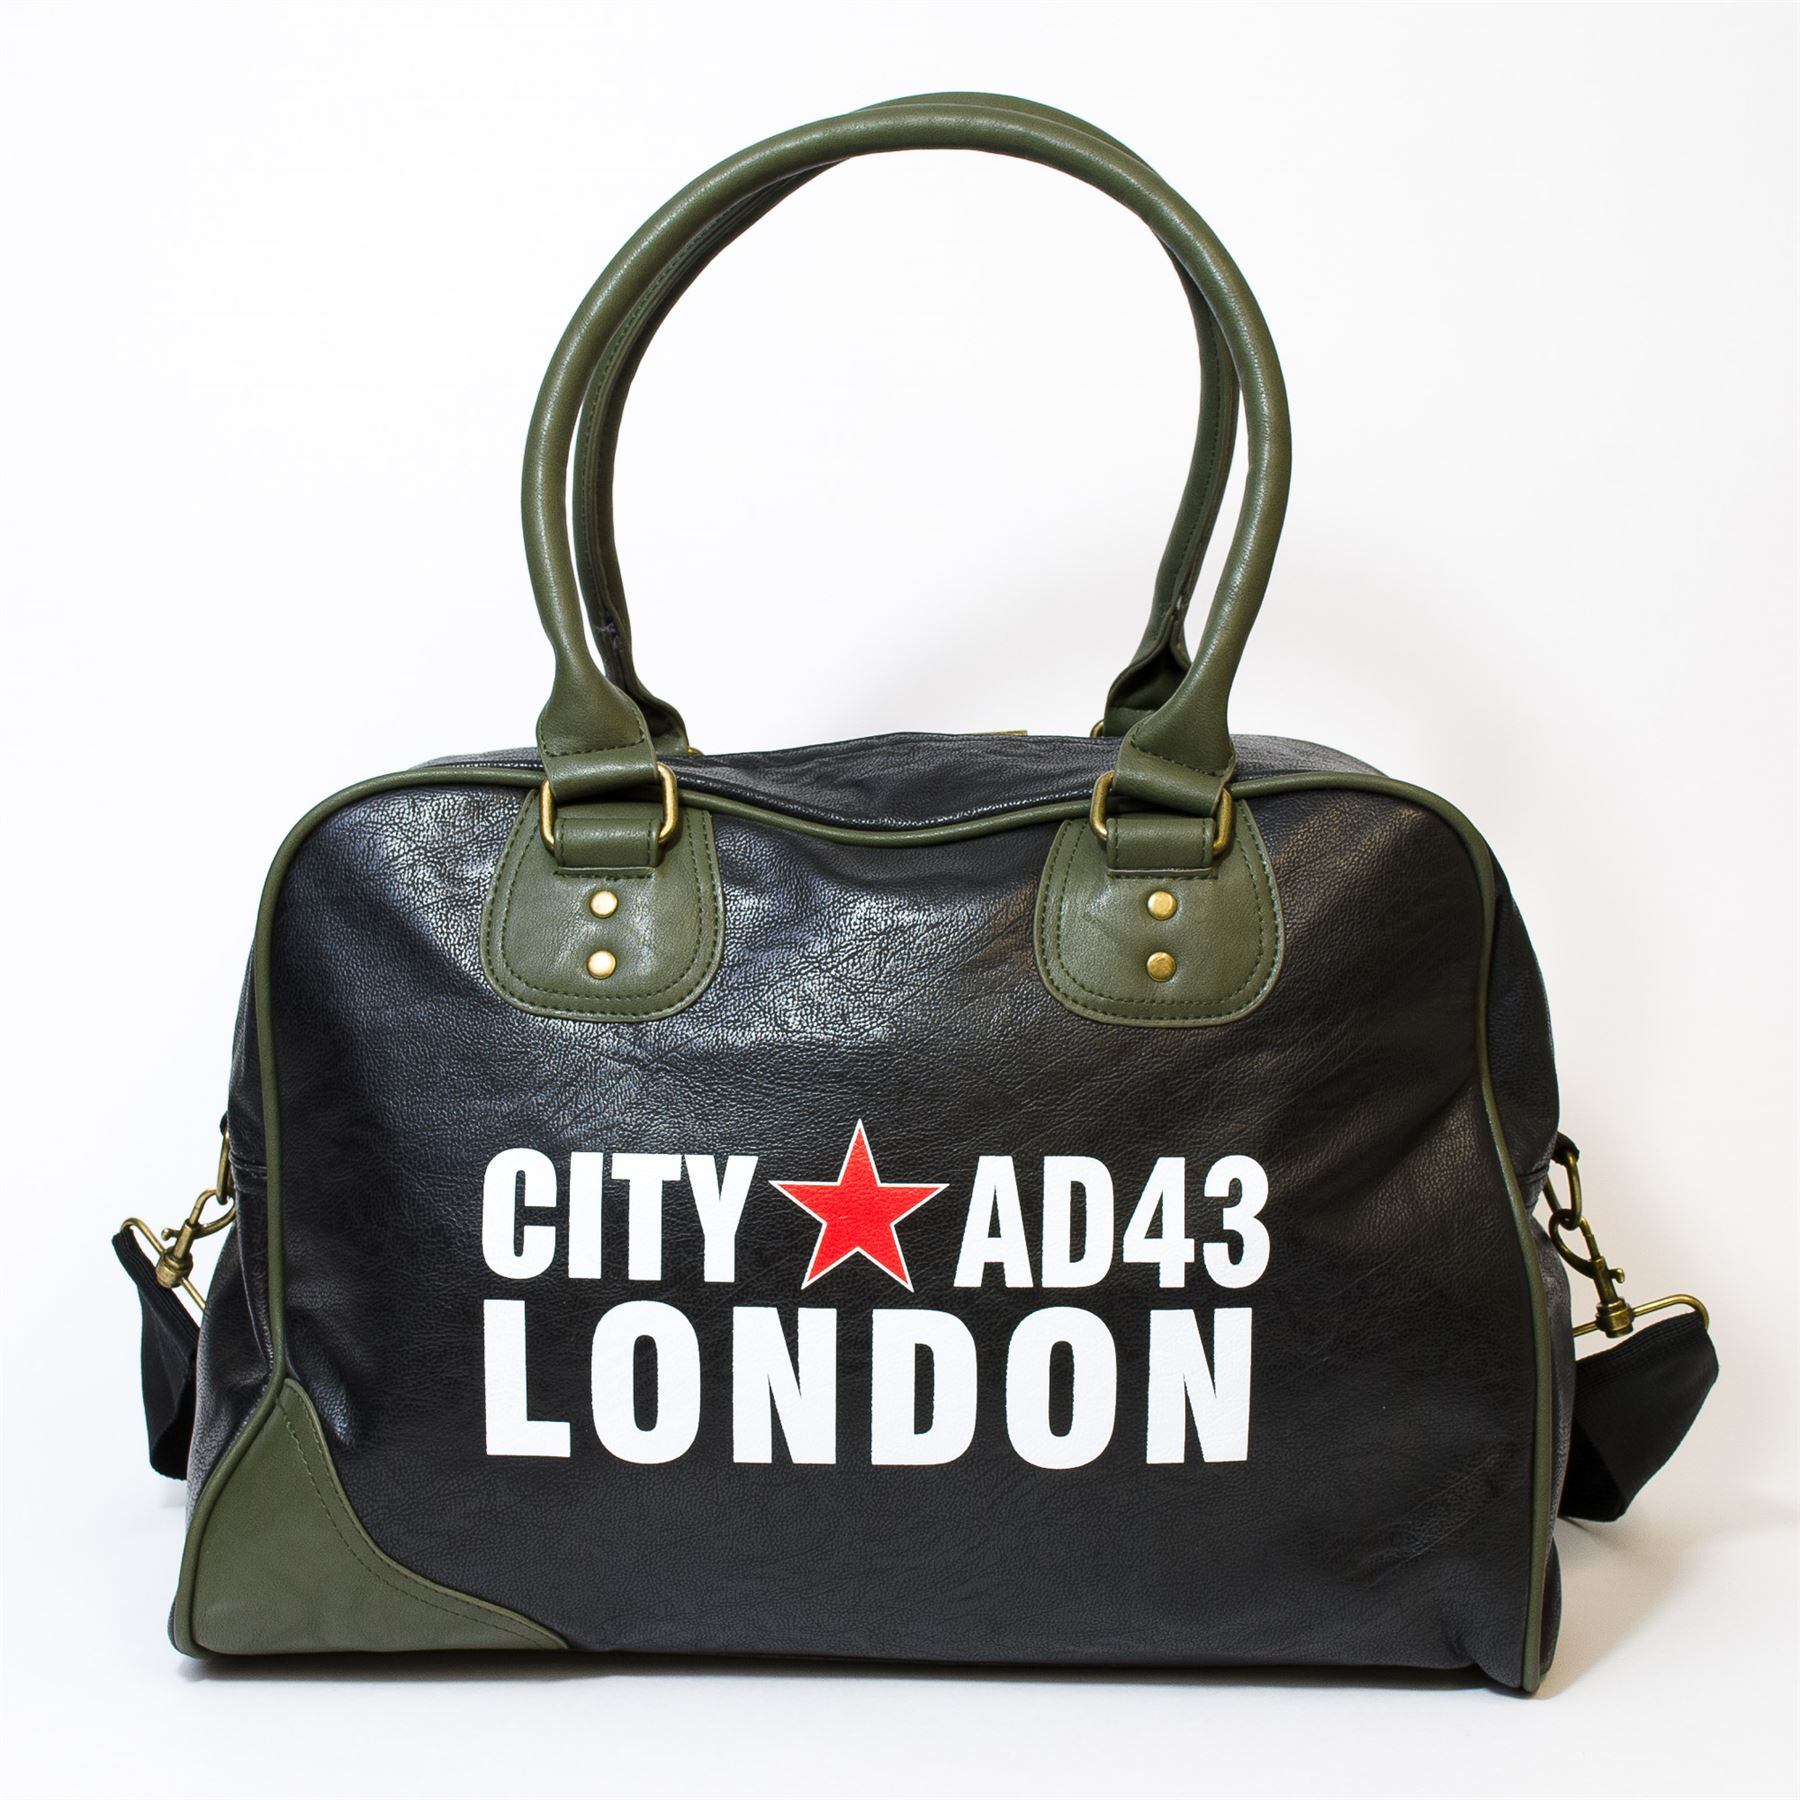 Sac-bowling-Londres-034-City-AD43-034